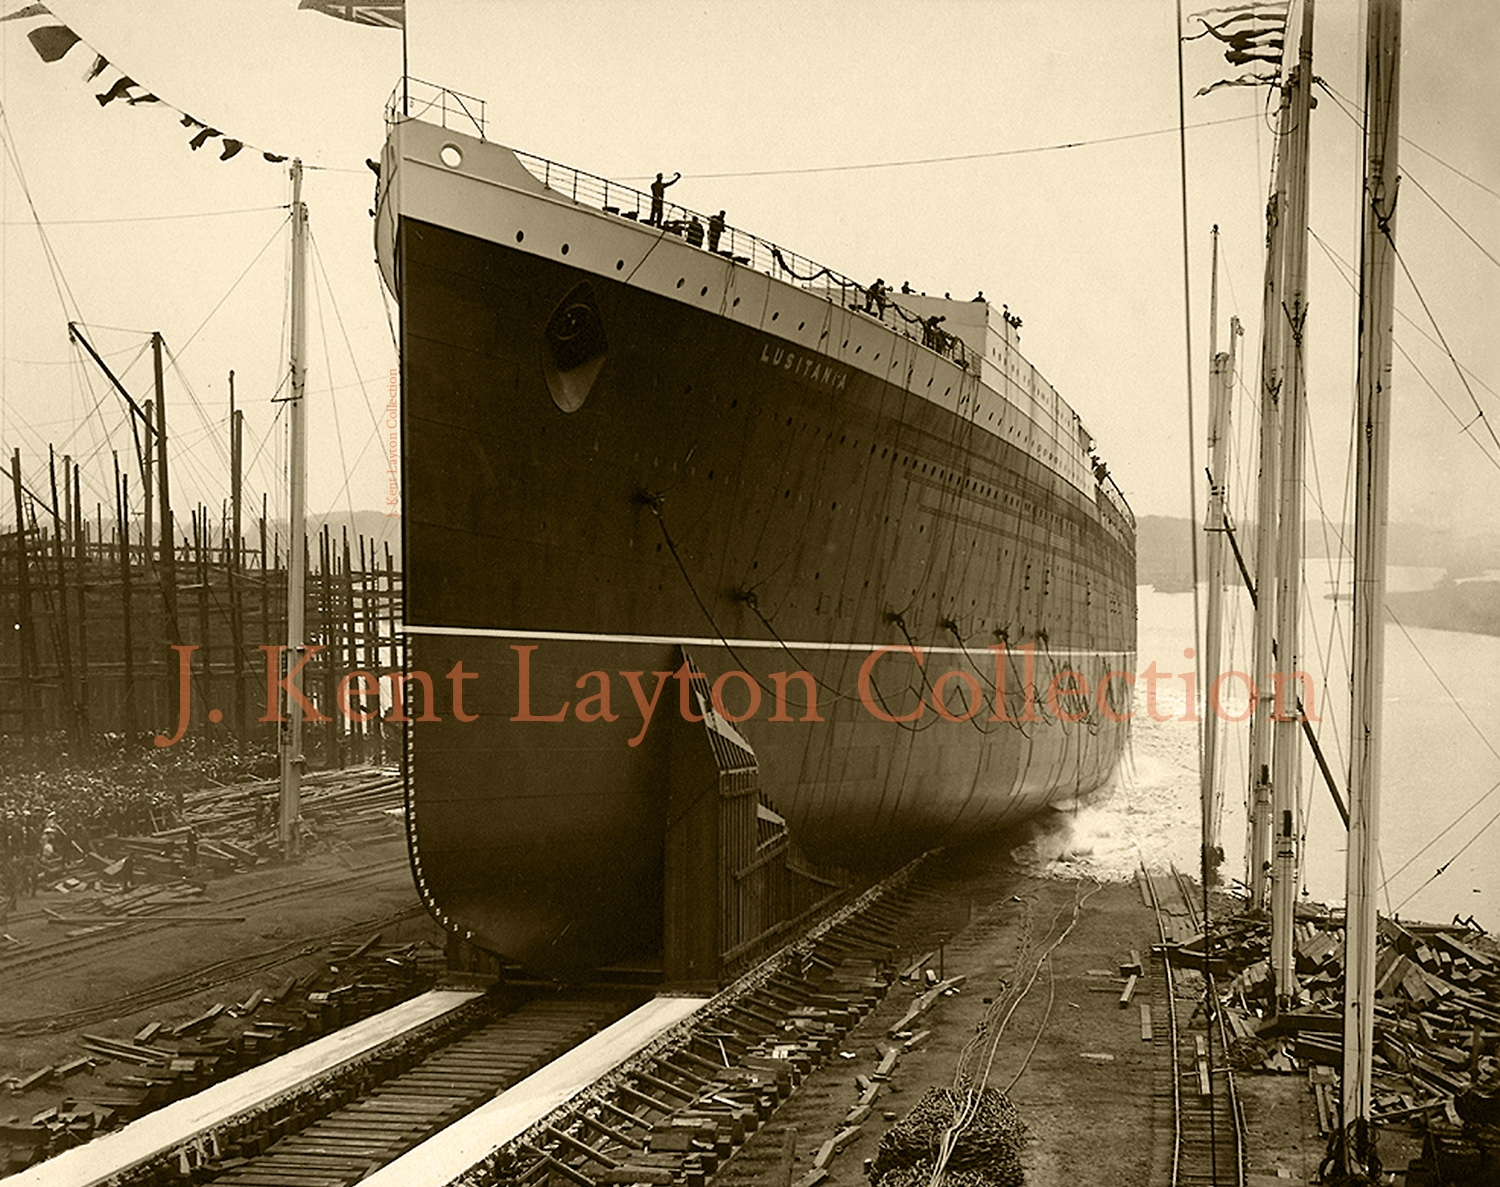 June 7, 1906: The Lusitania is launched. (J. Kent Layton Collection)